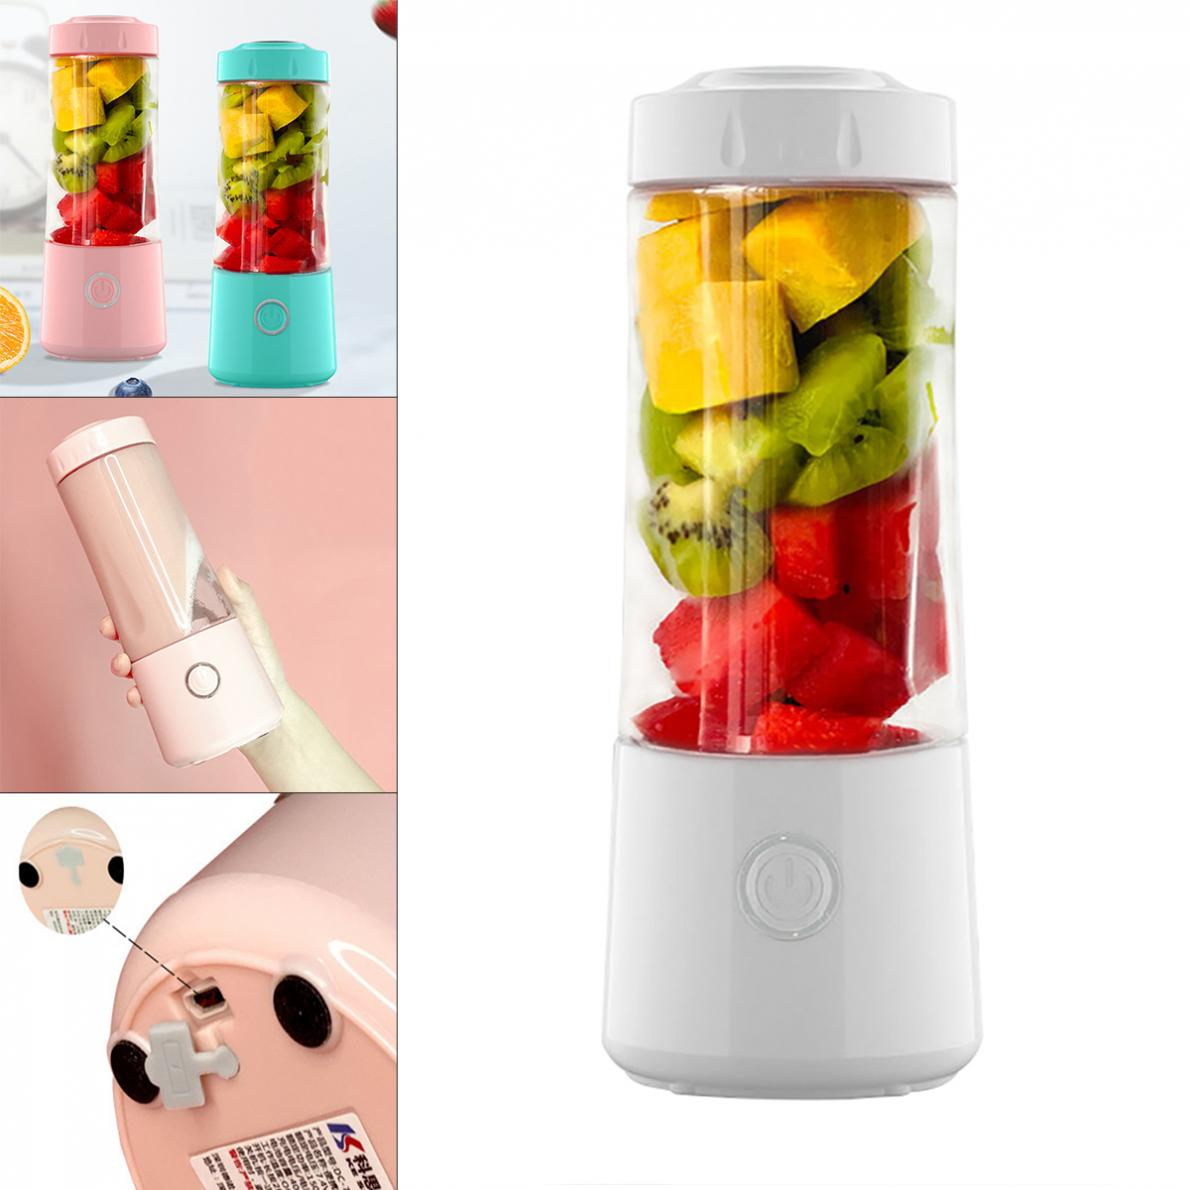 Juice Cup USB Rechargeable Portable Blender Personal Size Blender Fruit Juicer Cup for Sports Office Travel недорого